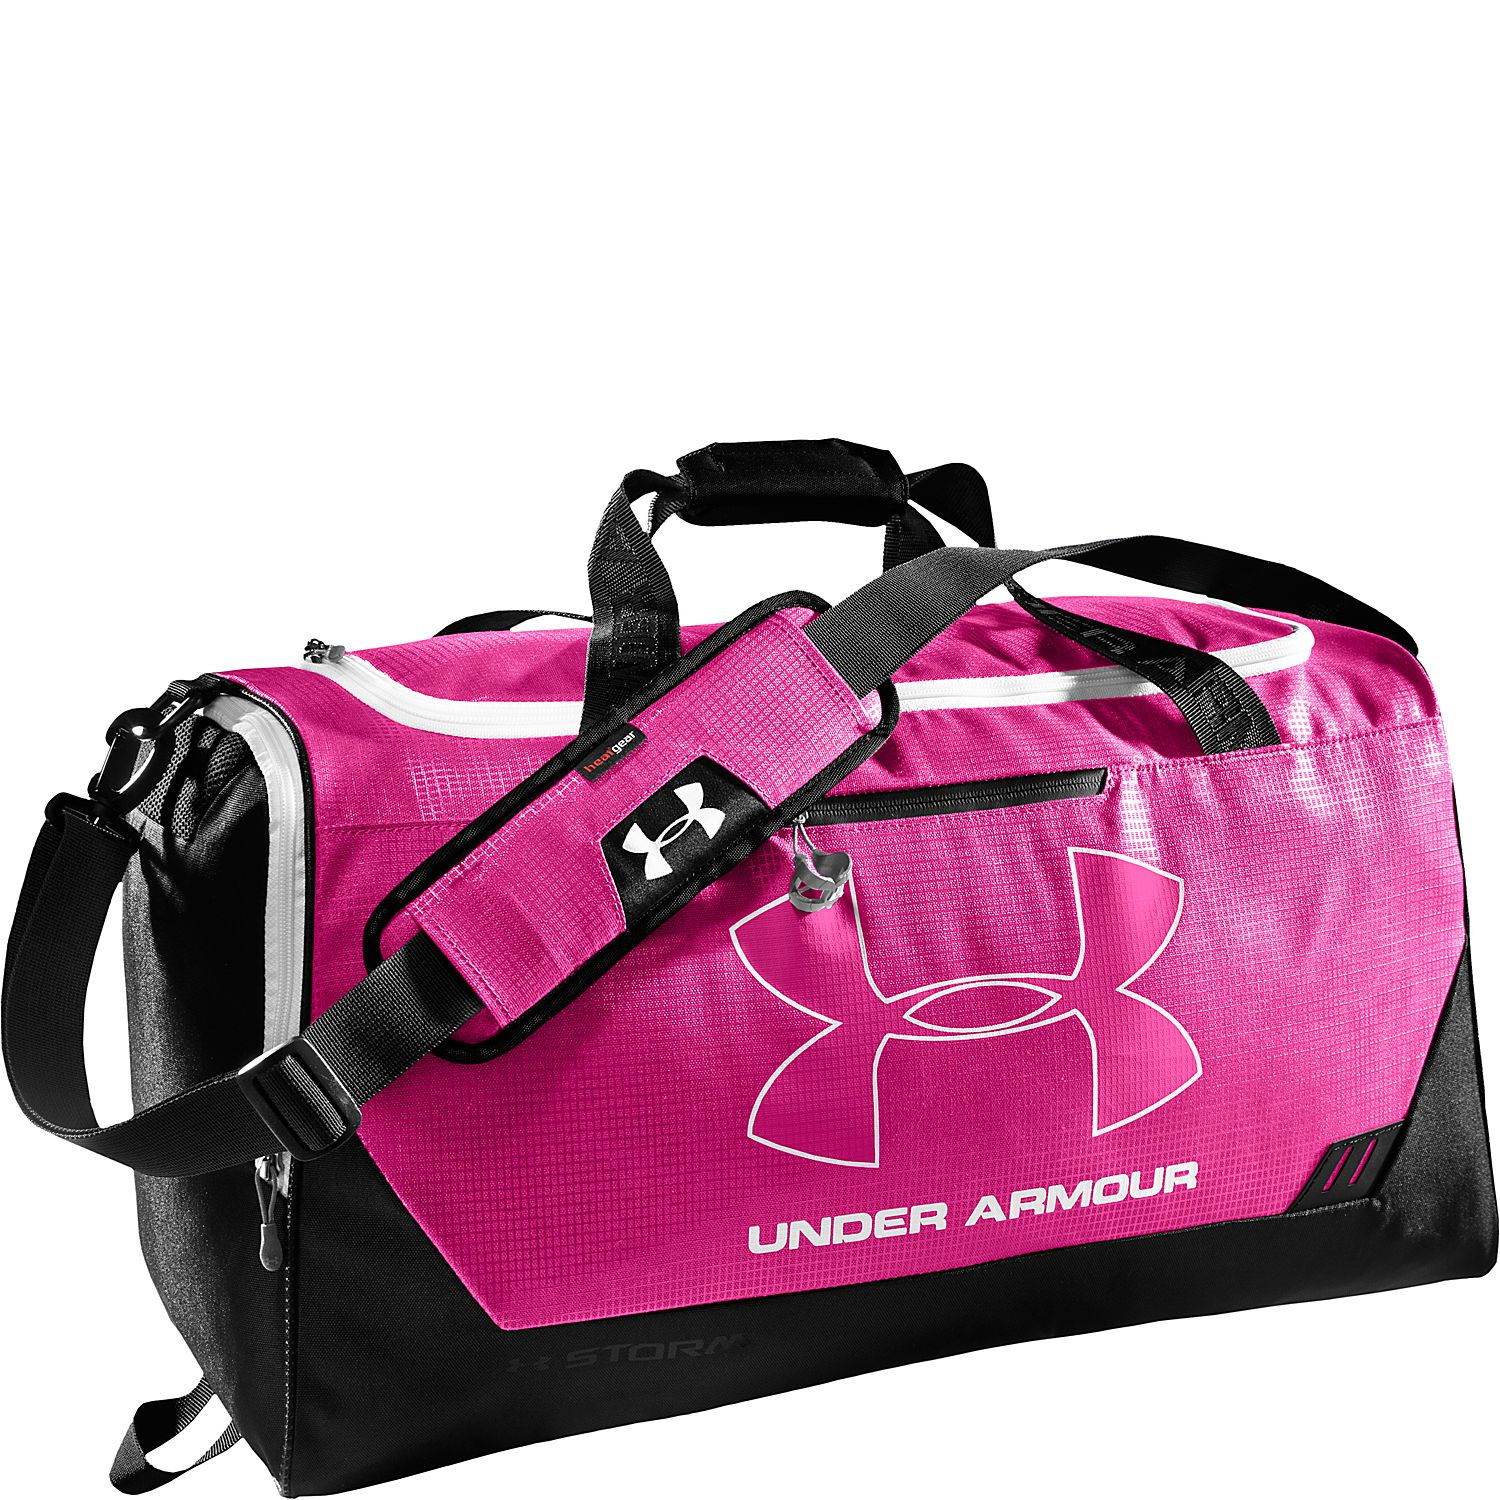 037f513fd1 Under Armour Ladies Gym Bag